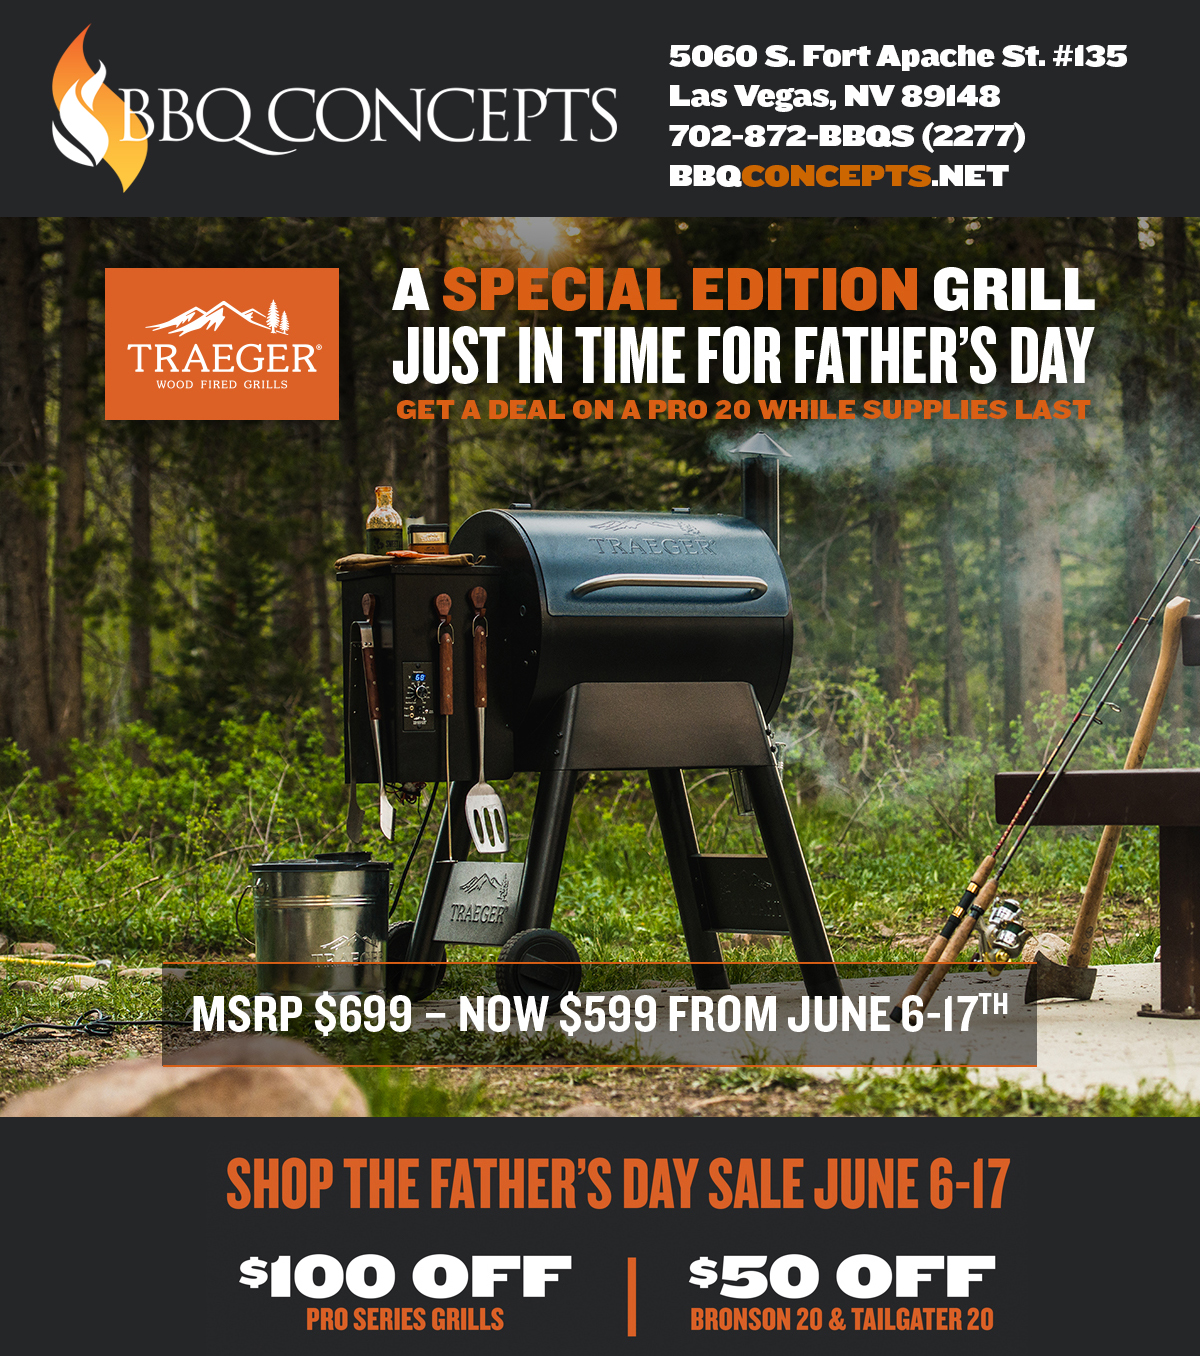 Saturday, May 12th, 2018 - National Traeger Day at BBQ Concepts